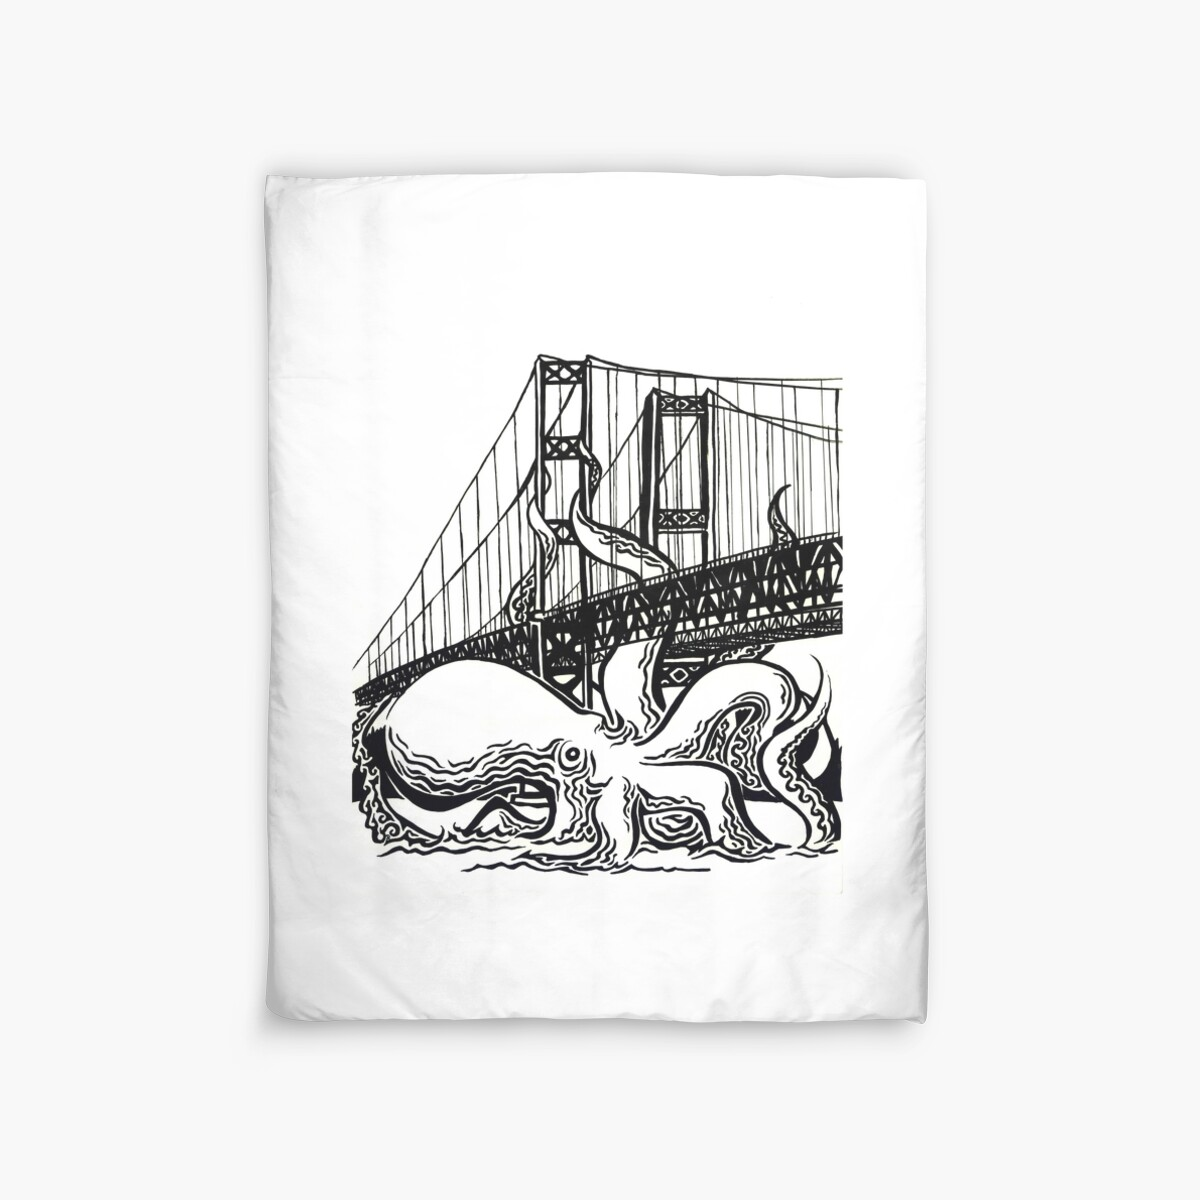 tacoma narrows octopus duvet covers by arielpopp  redbubble - tacoma narrows octopus by arielpopp